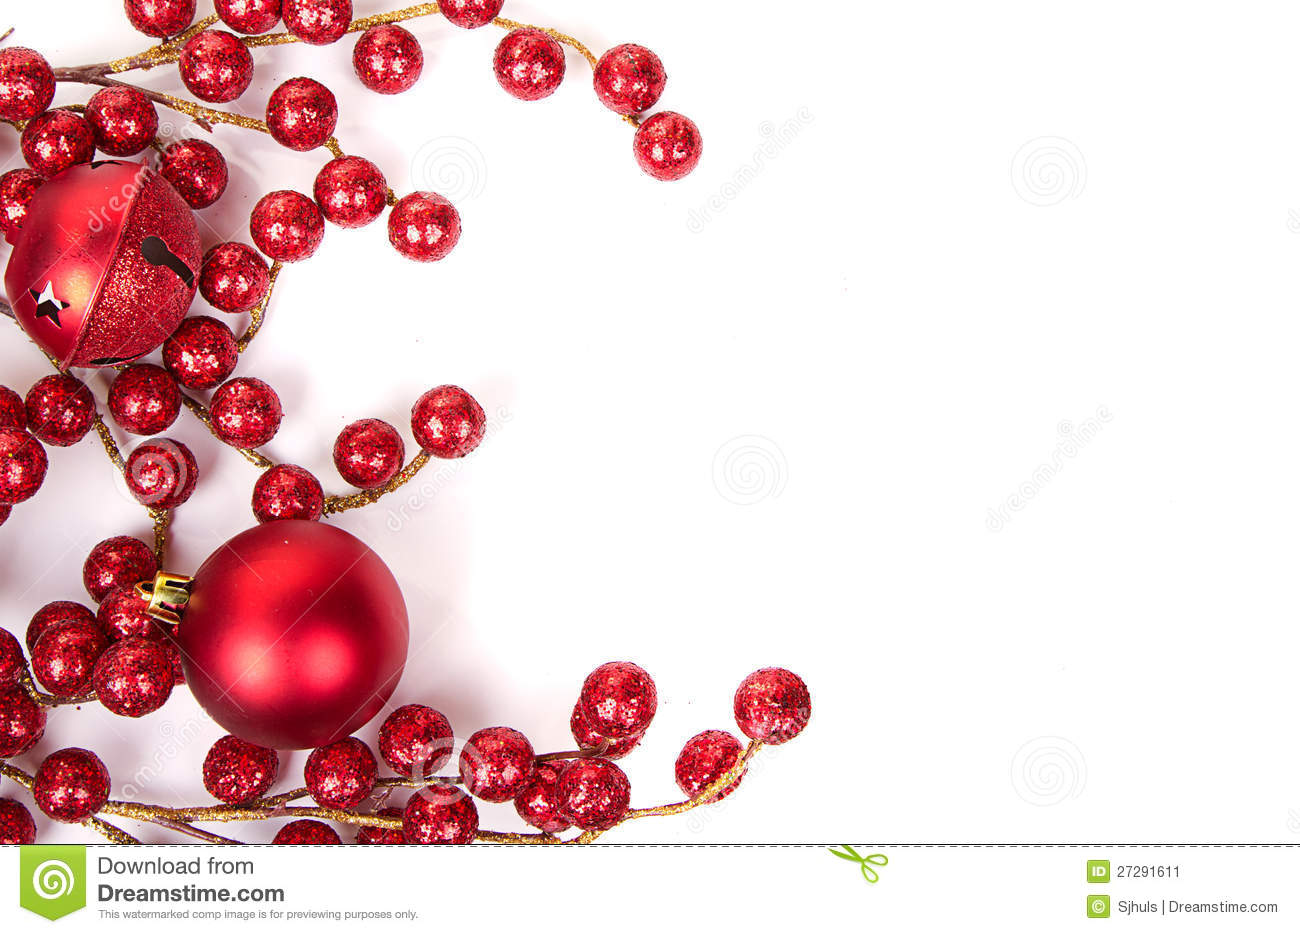 More similar stock images of christmas berries and ornaments